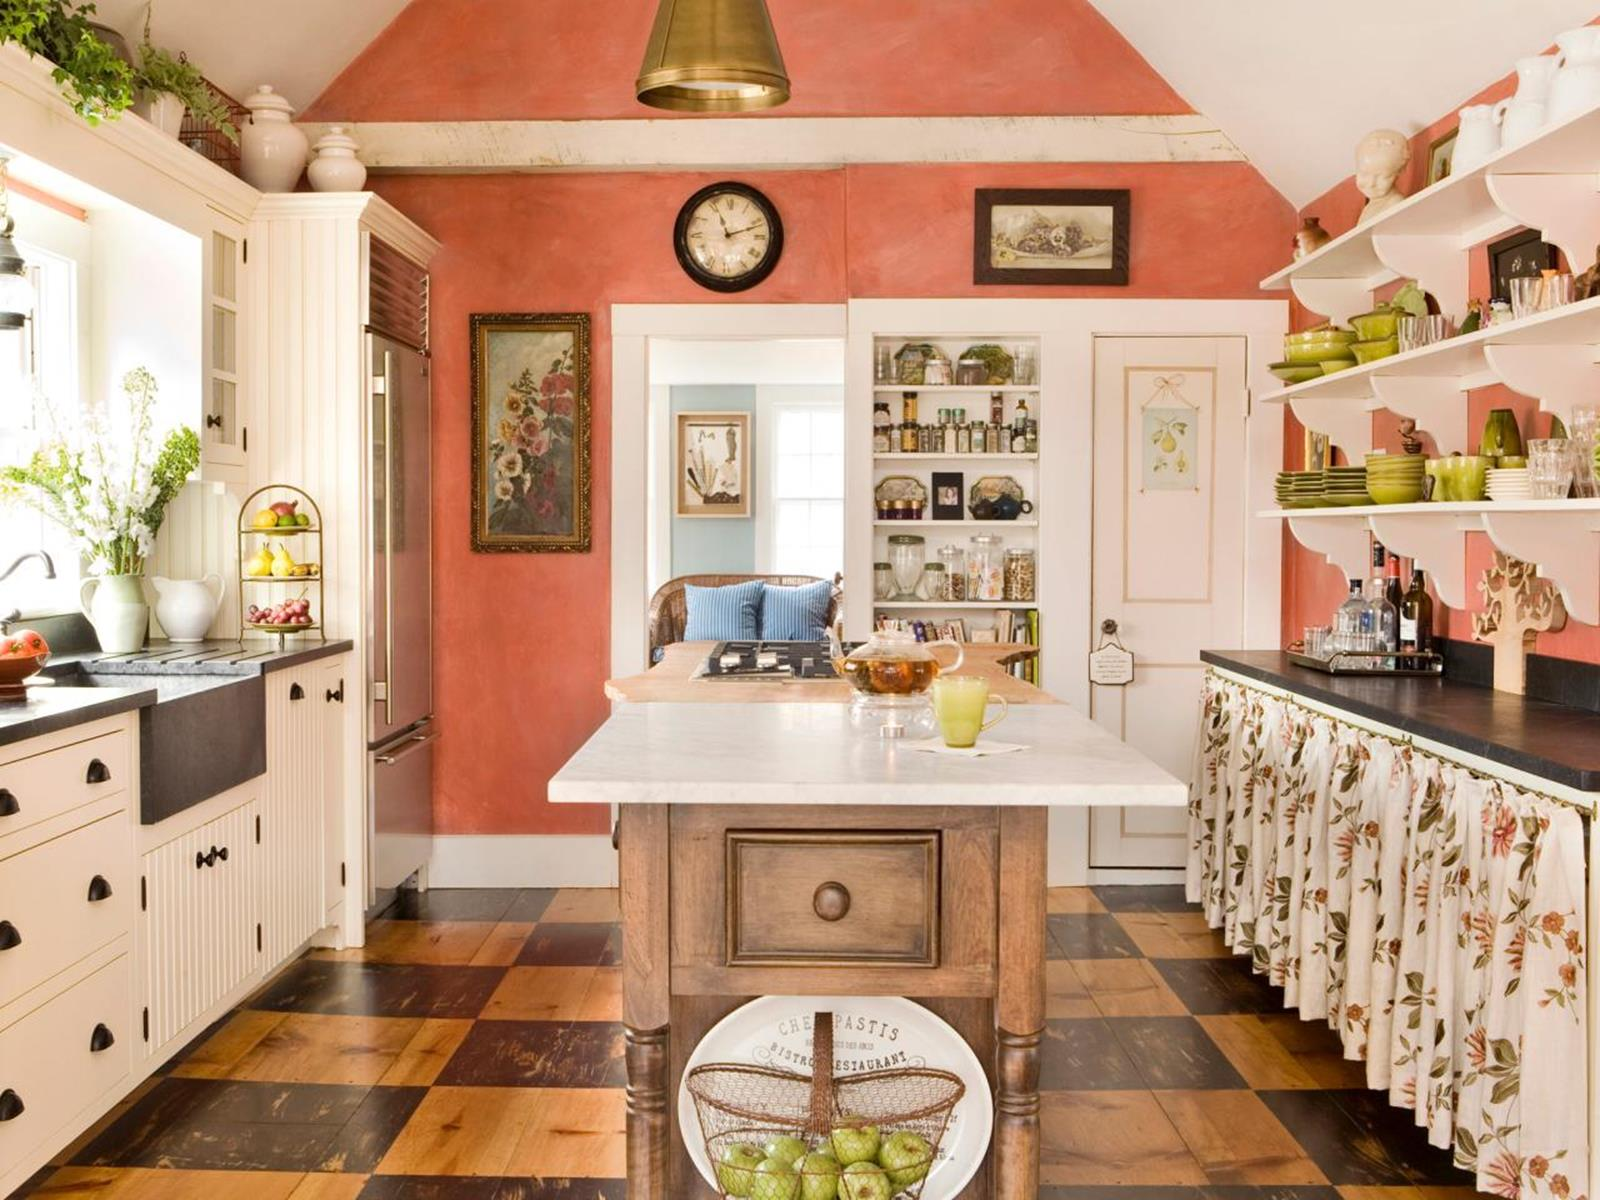 Projects to Make Kitchen More Neat and Beautiful 33